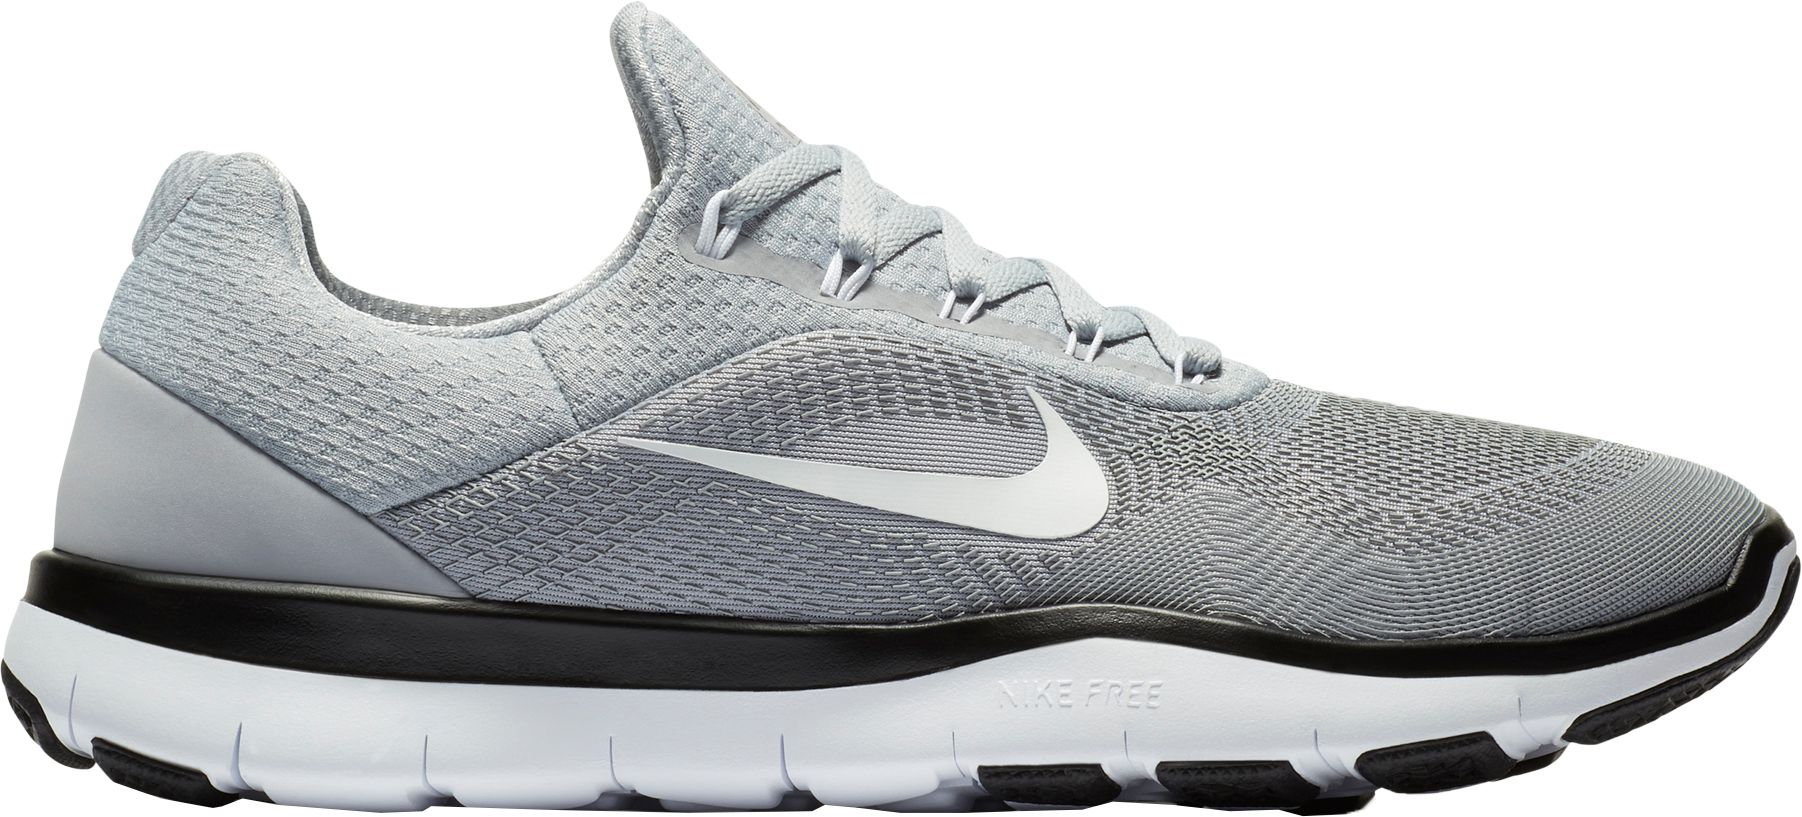 mens nike free trainer shoes